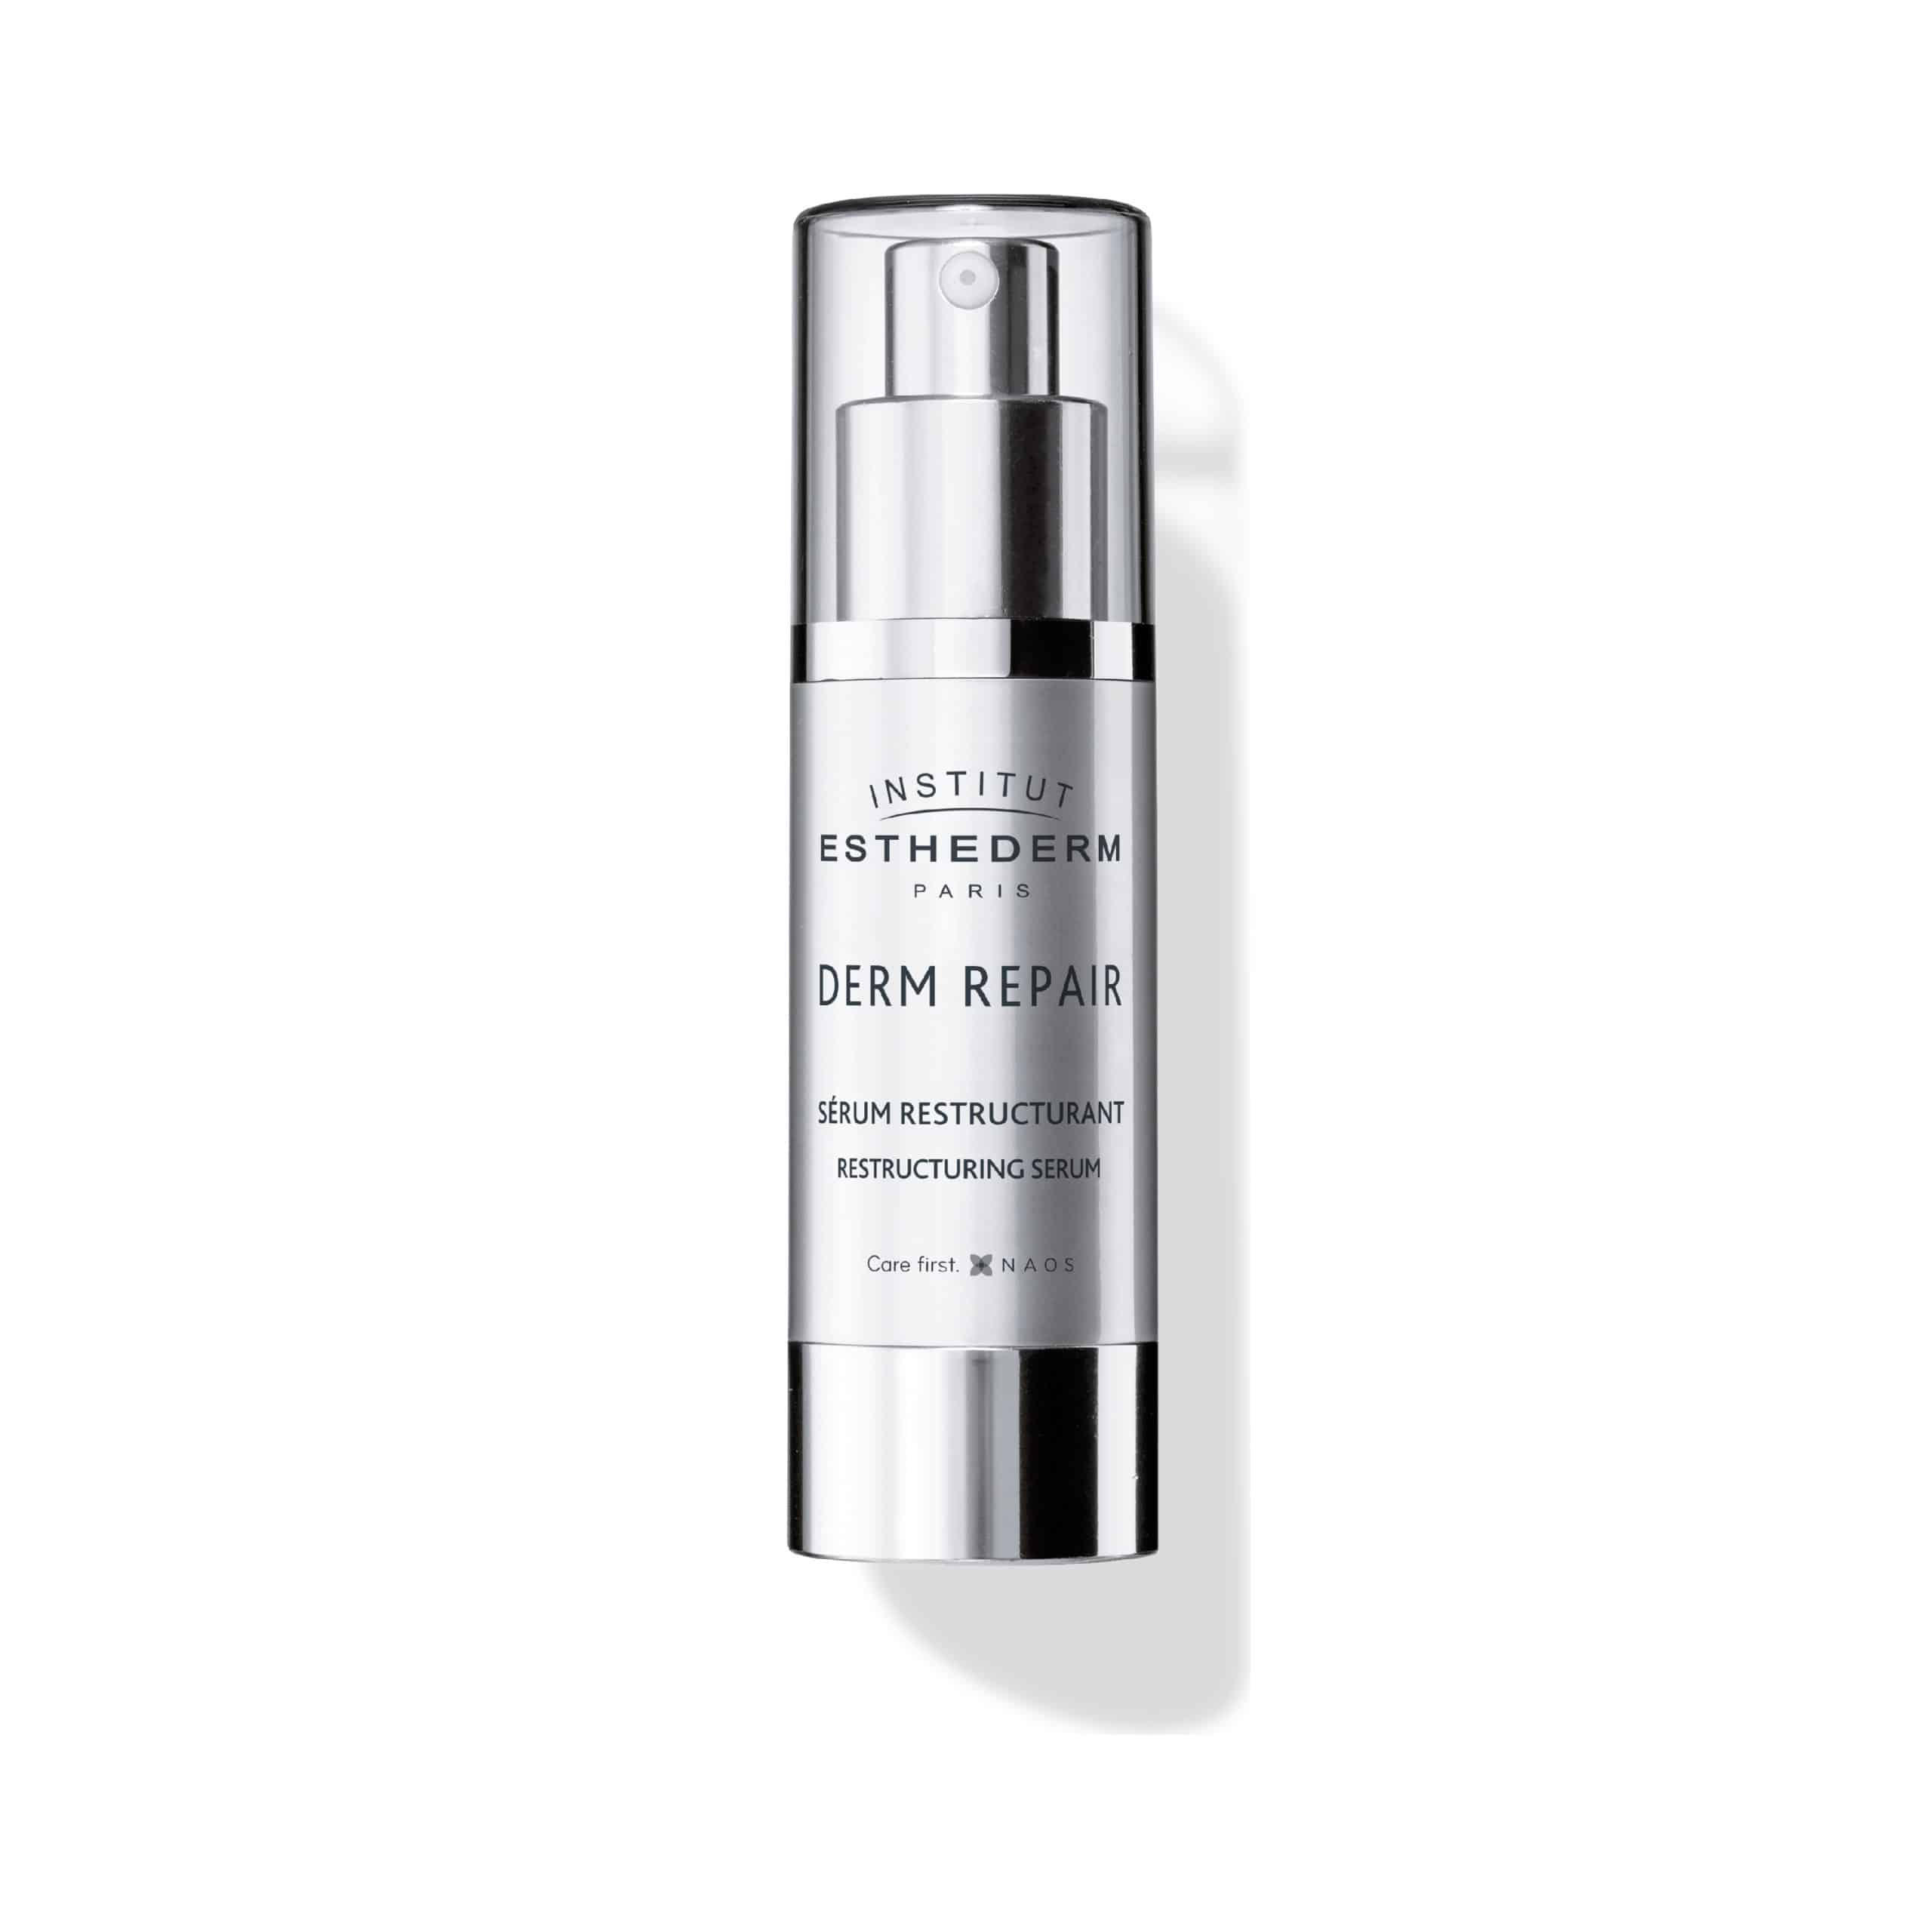 ESTHEDERM product photo, Active Repair Derm Repair Restructuring Serum 30ml, concentrated care for firmness and wrinkles